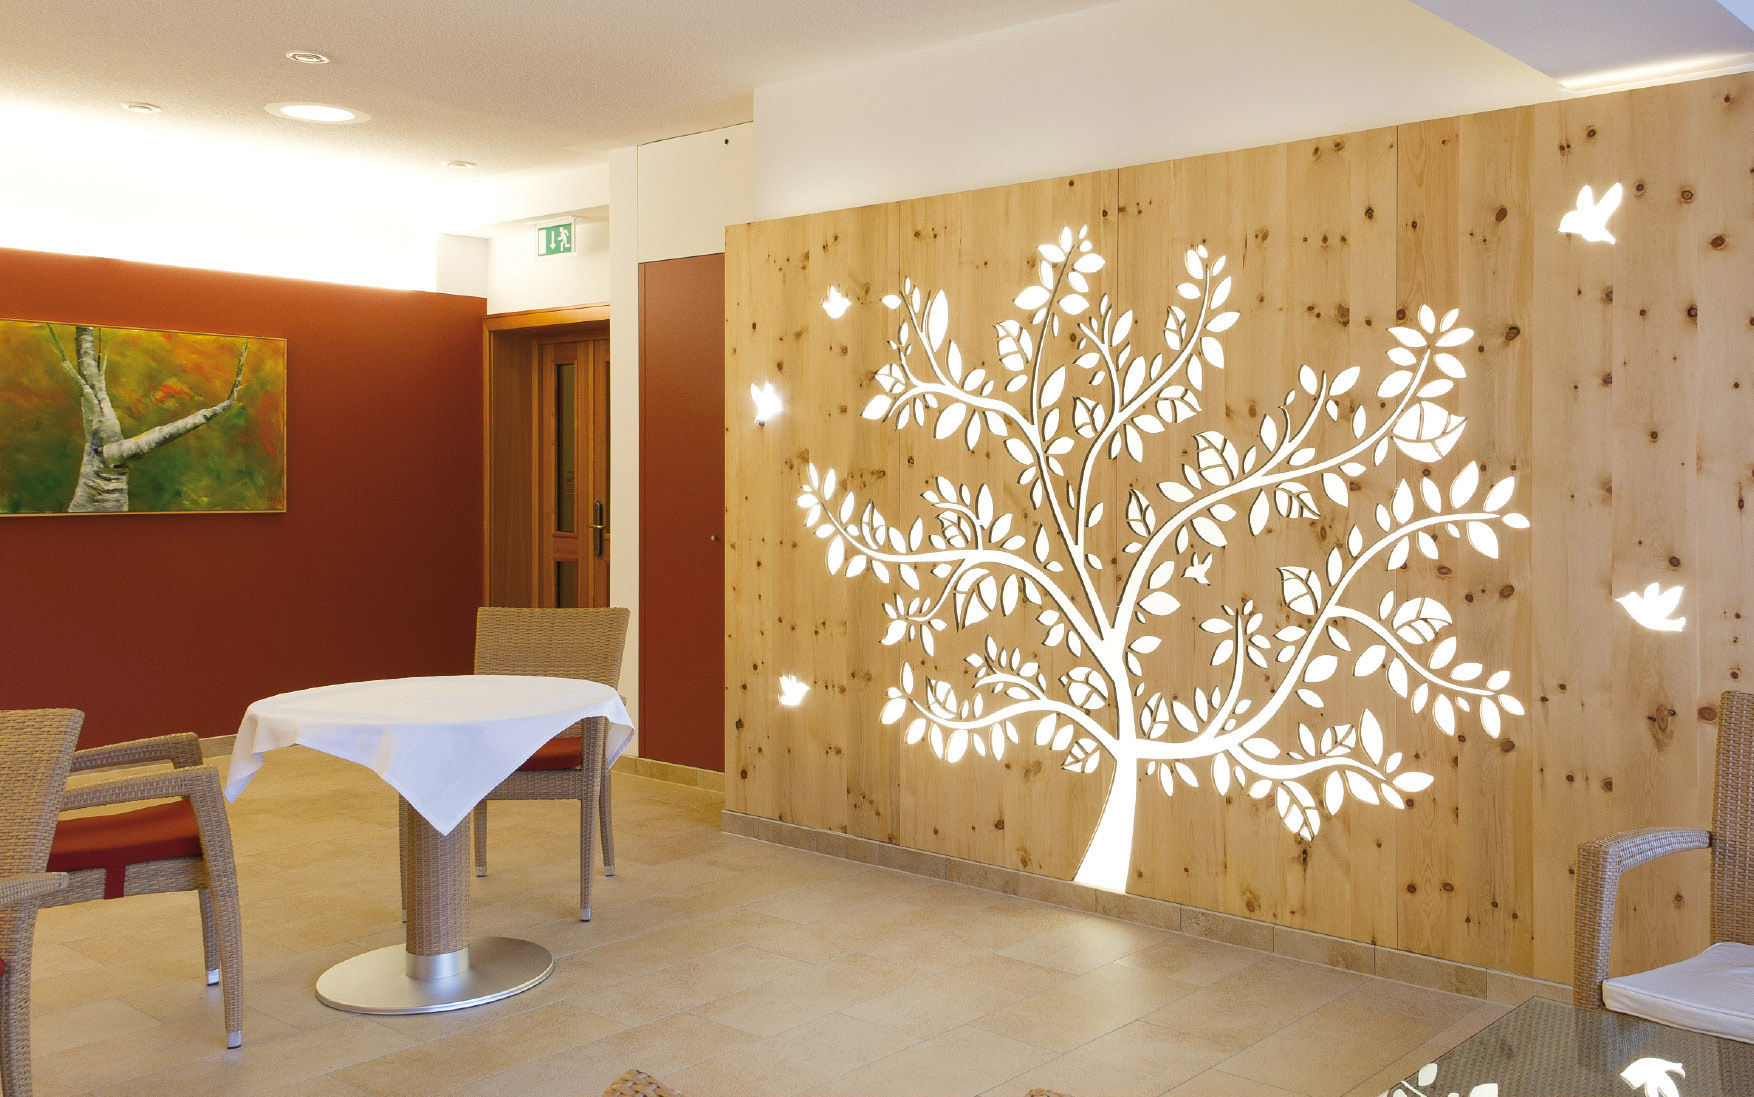 Exceptionnel Wood Decorative Panel / For Partition Walls / Perforated   DORFHOTEL PETER  U0026 KAROLA FASCHING GMBH